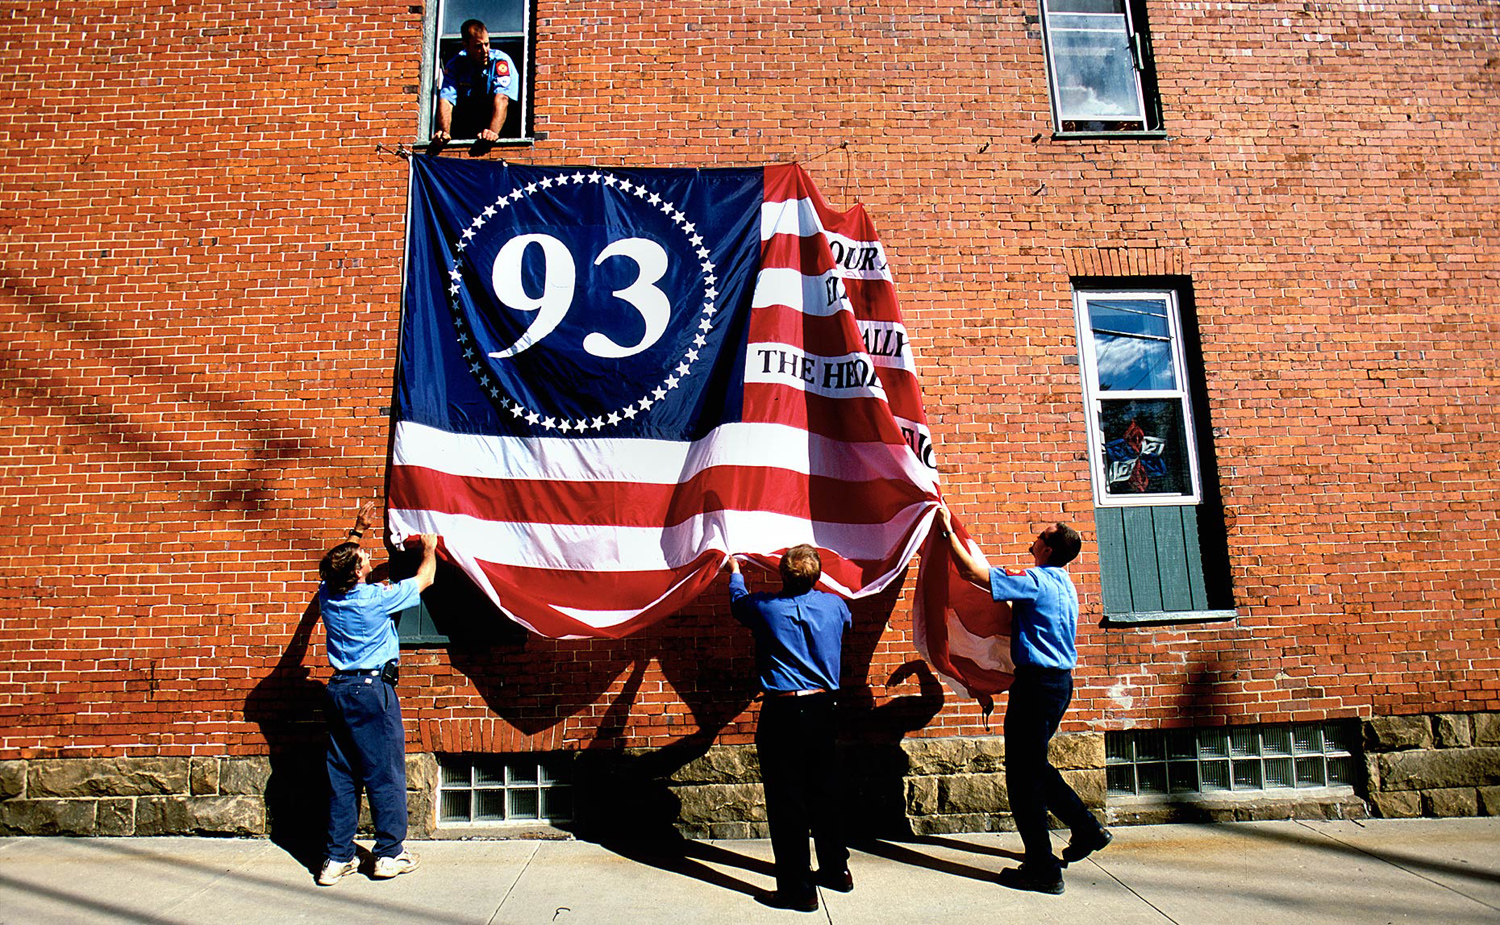 Firemen take down a commemorative flight 93 flag from the side of a building in downtown Shanksville, PA. on the one year anniversary of 9/11.